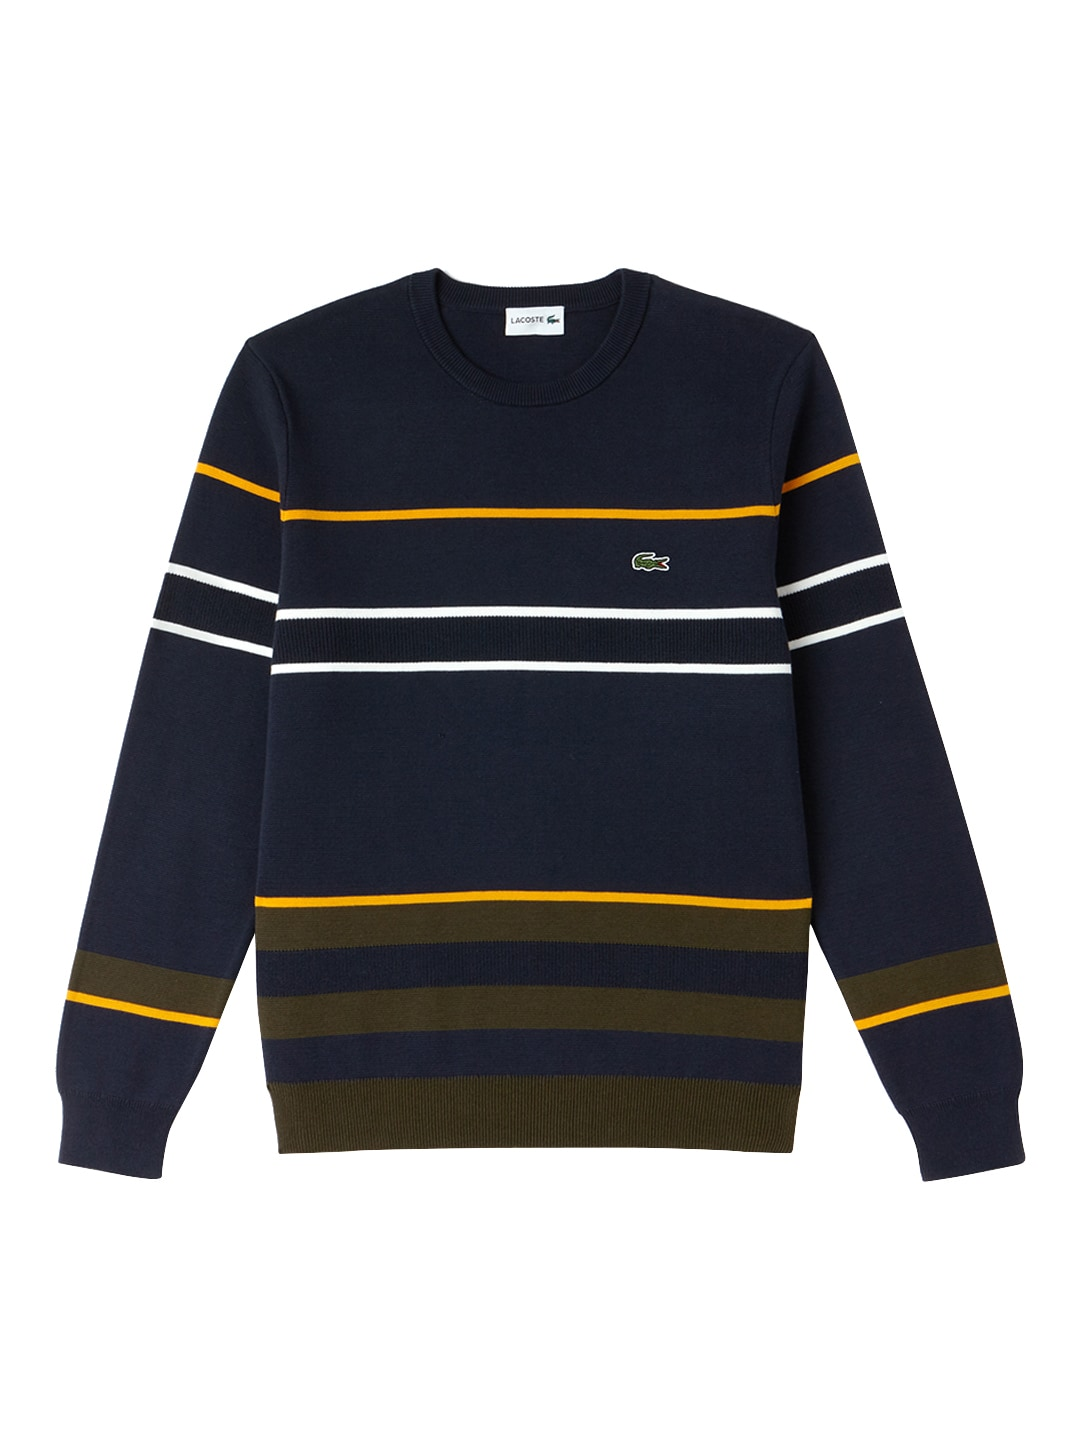 5297bb1762cc Lacoste Sweaters - Buy Lacoste Sweaters online in India